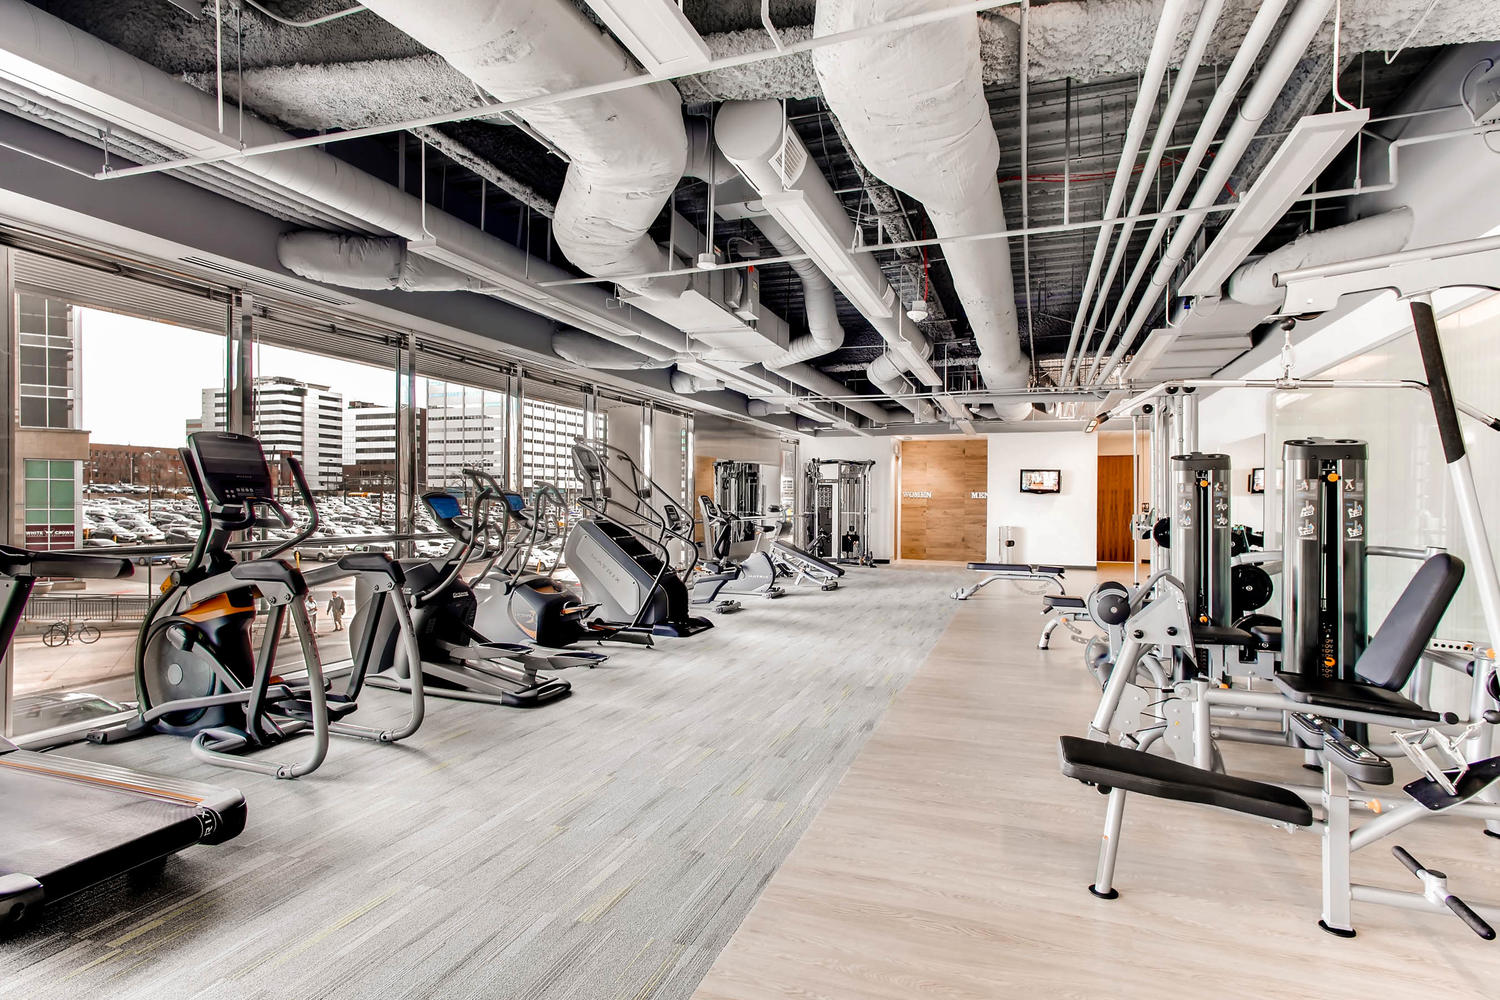 http://1999broadway.com/wp-content/uploads/2016/08/1999-Broadway-Denver-CO-80202-large-035-14-Fitness-Center-1500x1000-72dpi.jpg